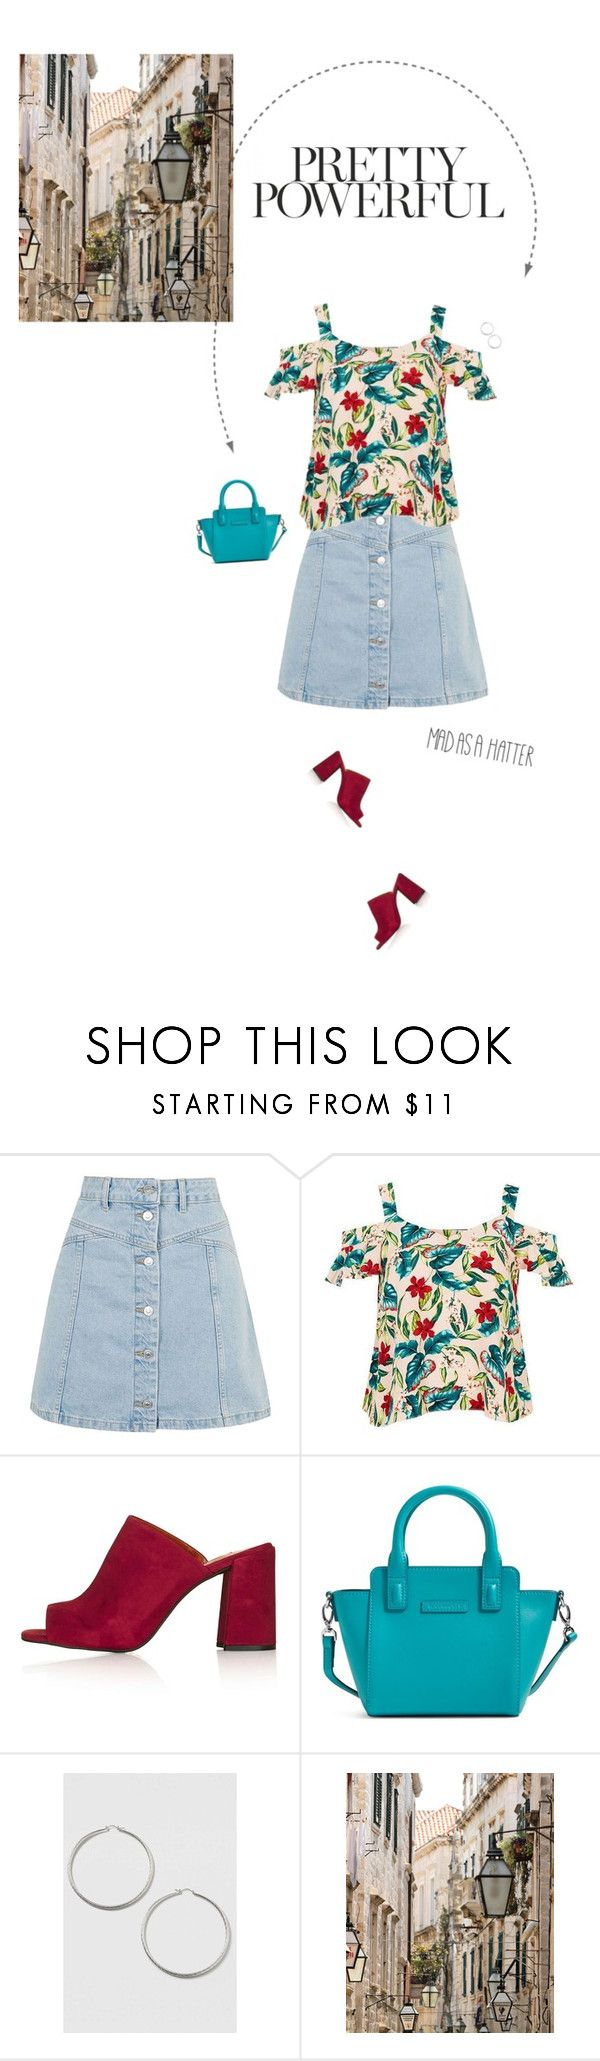 """Blush Floral Bardot Top & Denim Button Through Skirt."" by xabbielou ❤ liked on Polyvore featuring Topshop, Vera Bradley and Chloé"